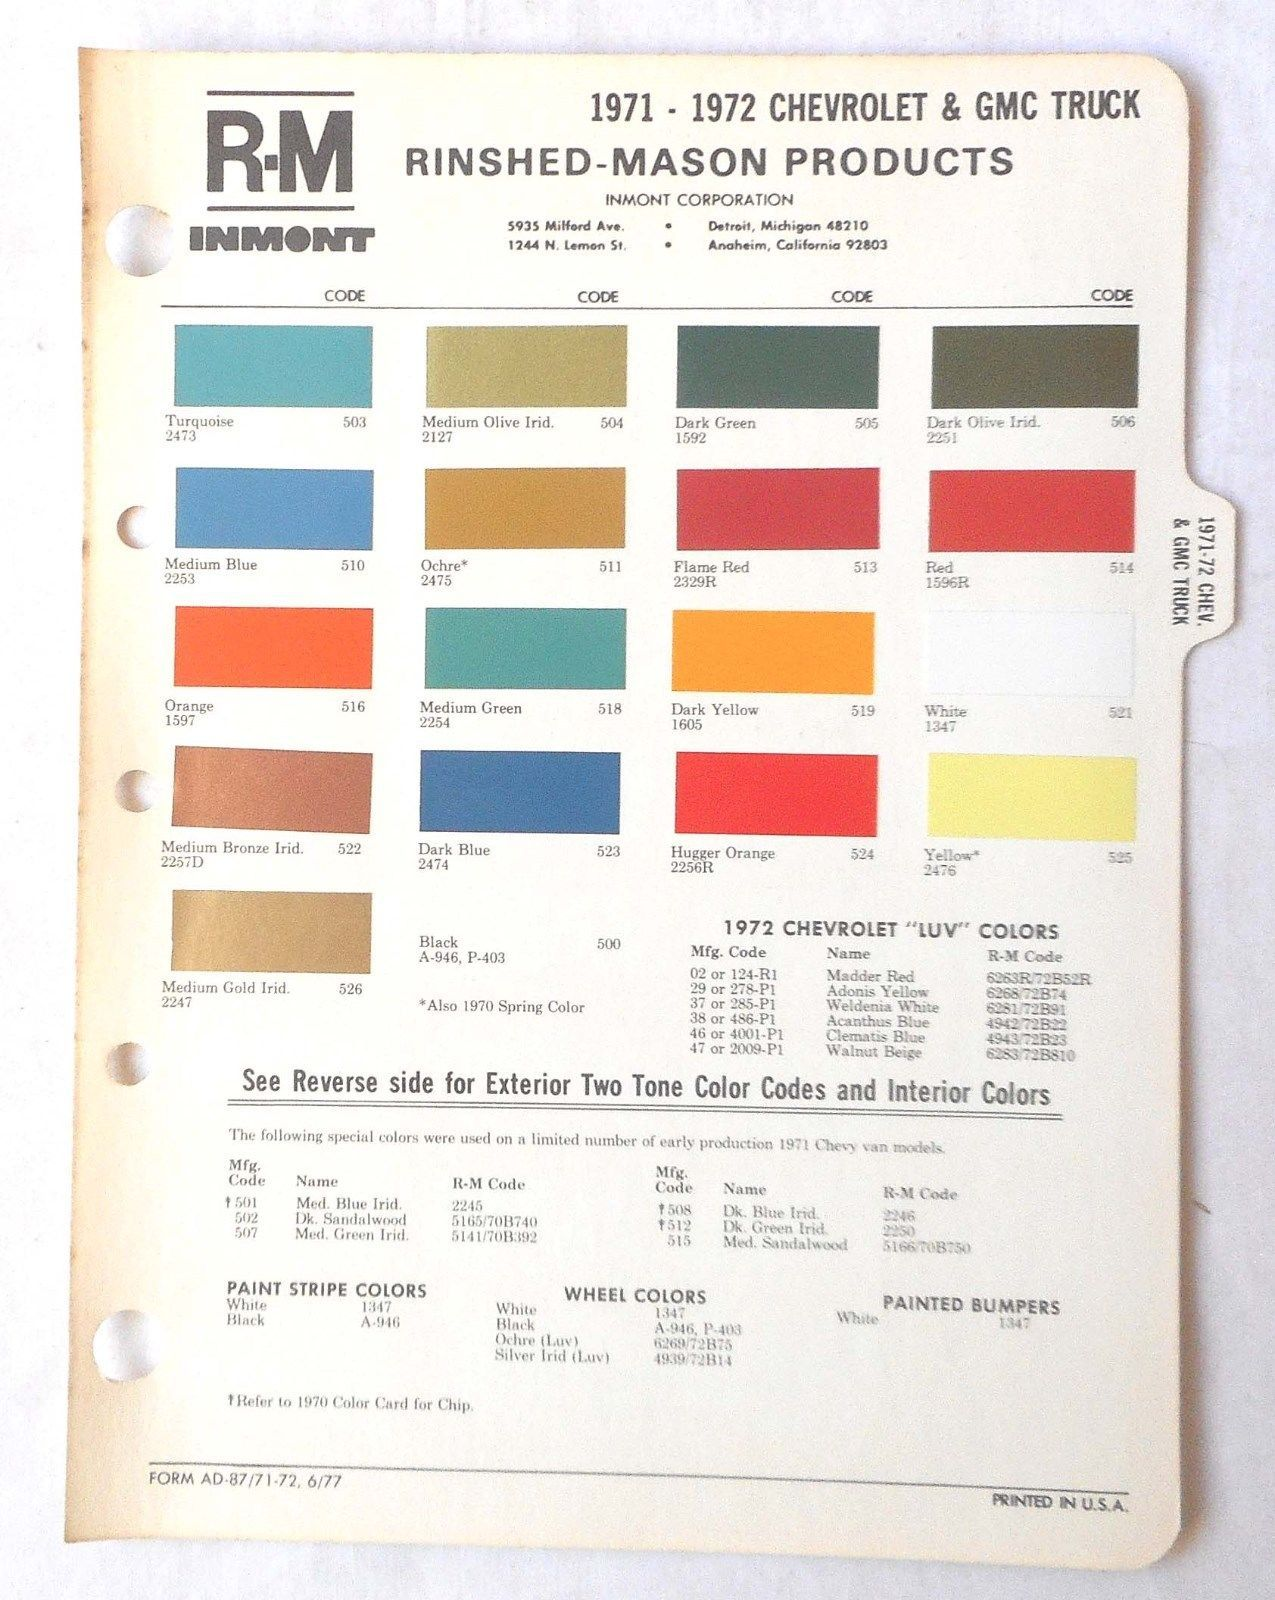 small resolution of 1971 1972 chevrolet truck and gmc r m color paint chip chart all models ebay